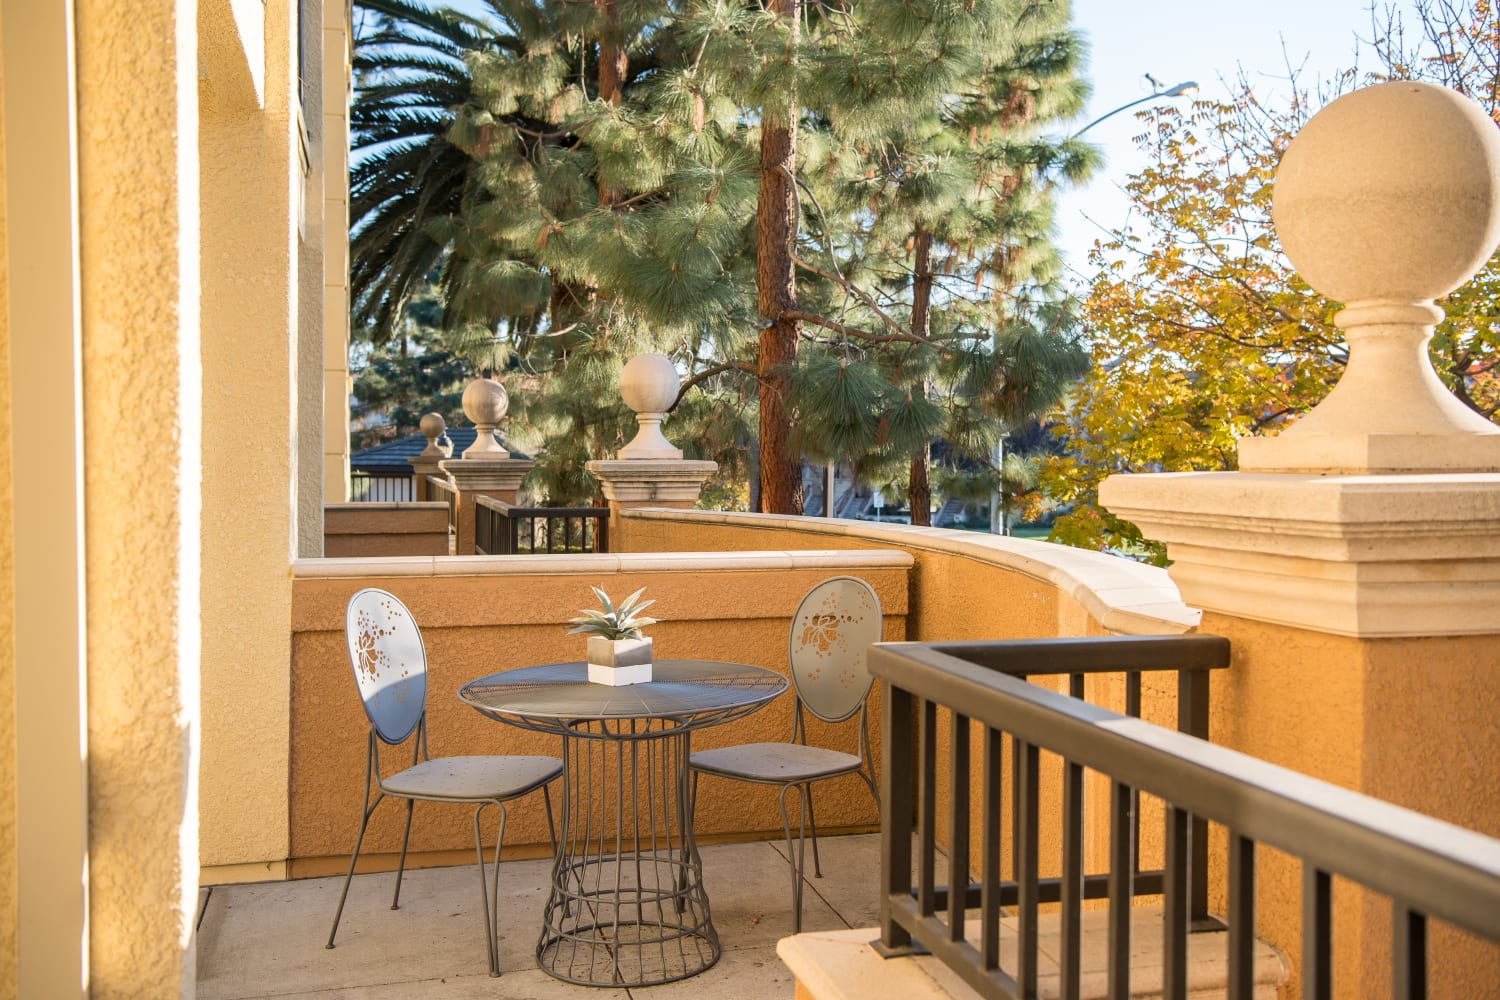 Enjoy your own private patio at The Carlyle in Santa Clara, California